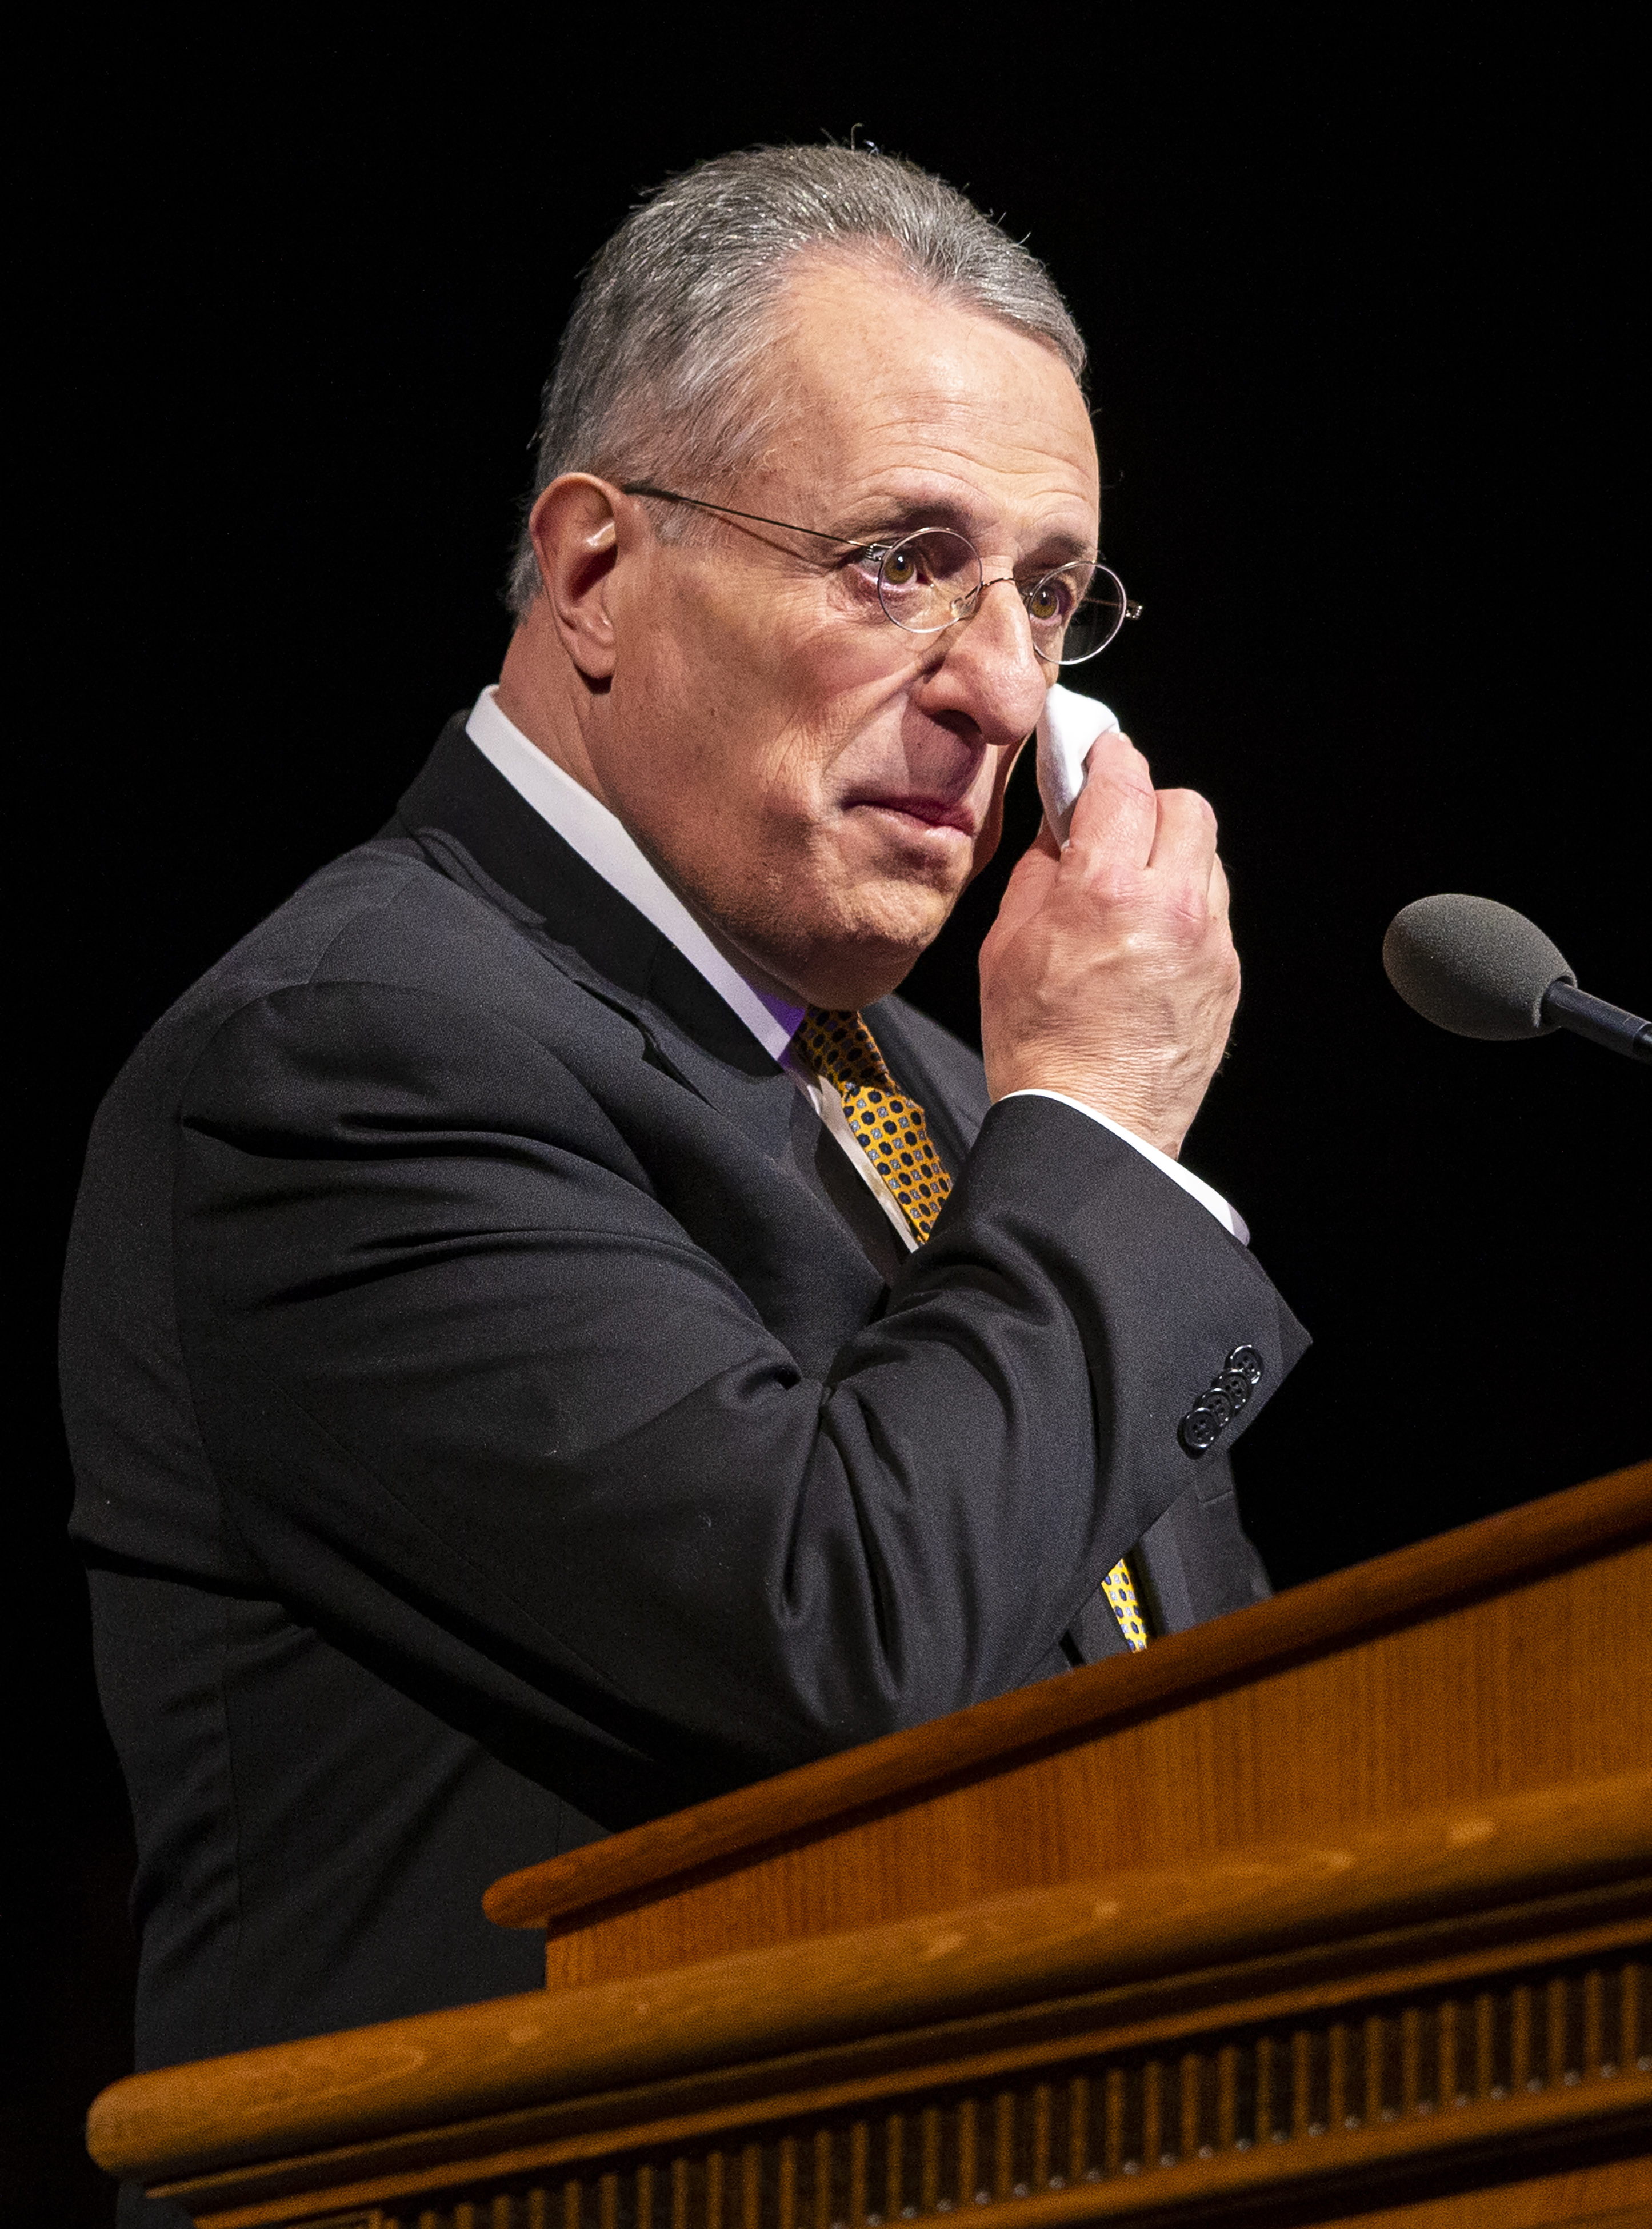 Elder Ulisses Soares of the Quorum of the Twelve Apostles of The Church of Jesus Christ of Latter-day Saints wipes tears from his eyes as he speaks at a devotional at BYU in Provo on Tuesday, Feb. 5, 2019.